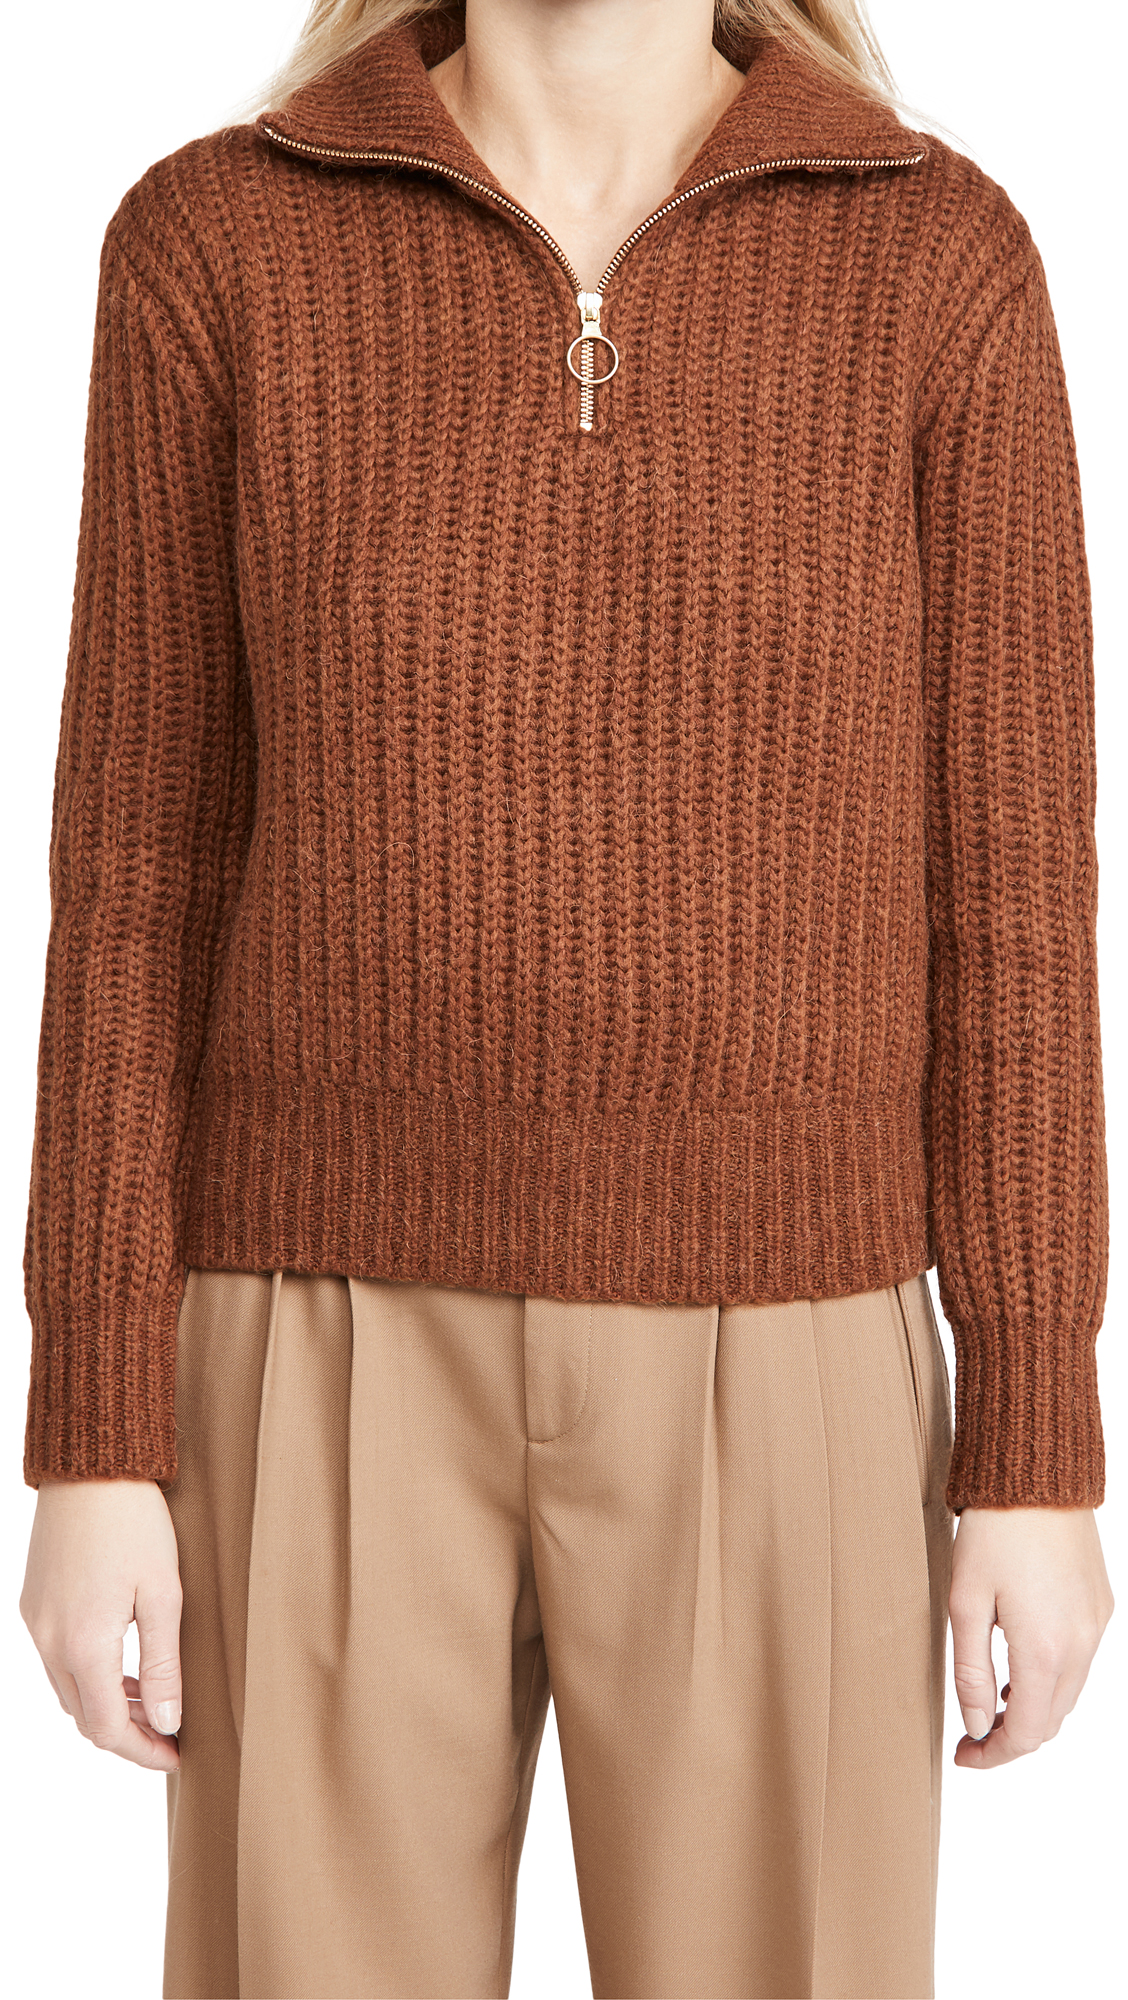 Scotch & Soda/Maison Scotch Half Zip Pullover Sweater